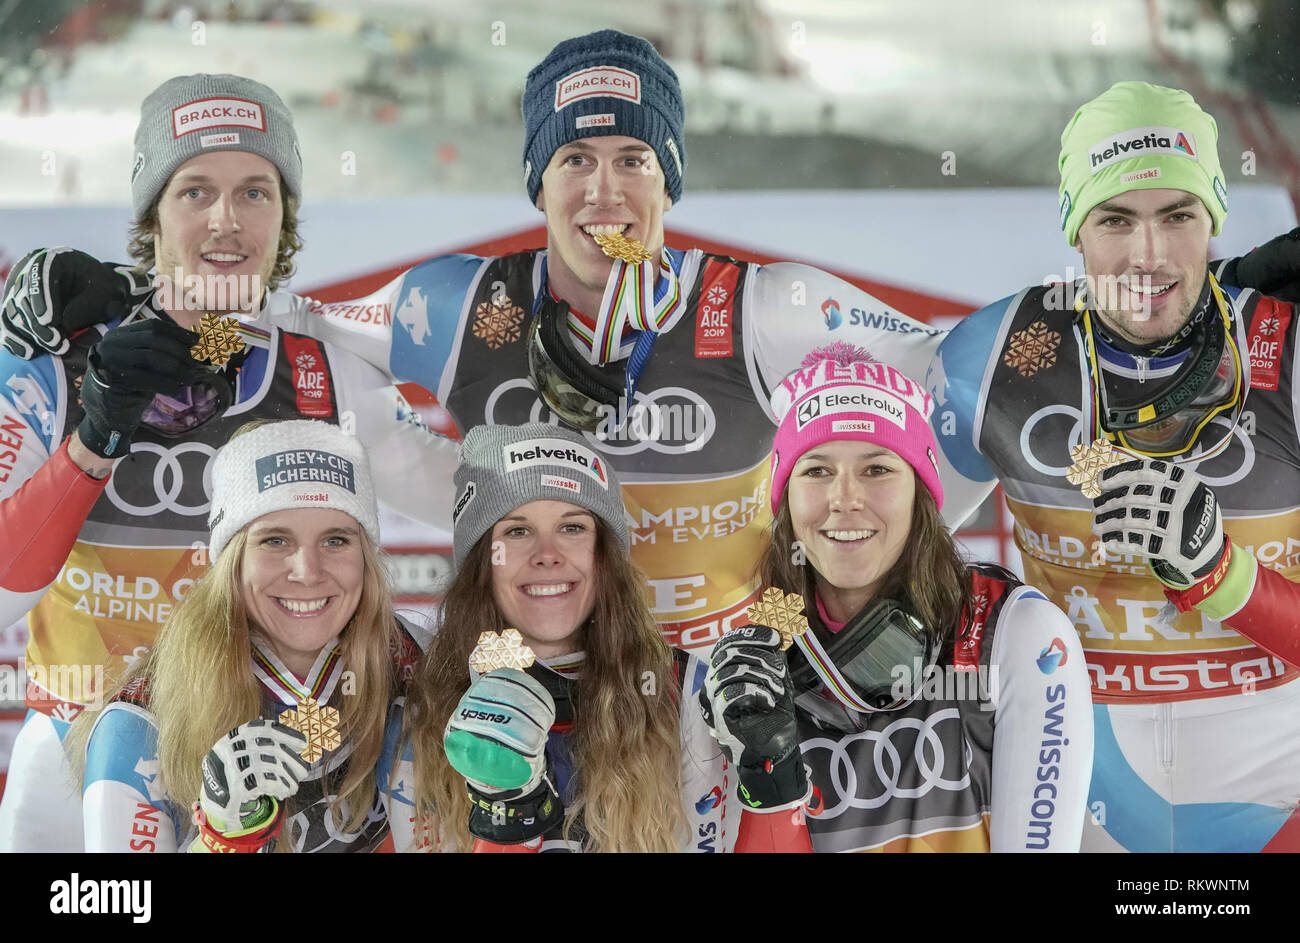 Are, Sweden. 12th Feb, 2019. Alpine skiing, world championship, team, mixed, race: The gold medallists from Switzerland (l-r) Sandro Simonet, Andrea Elenberger, Aline Danioth, Ramon Zenhaeusern, Wendy Holdener and Daniel Yule. Credit: Michael Kappeler/dpa/Alamy Live News - Stock Image